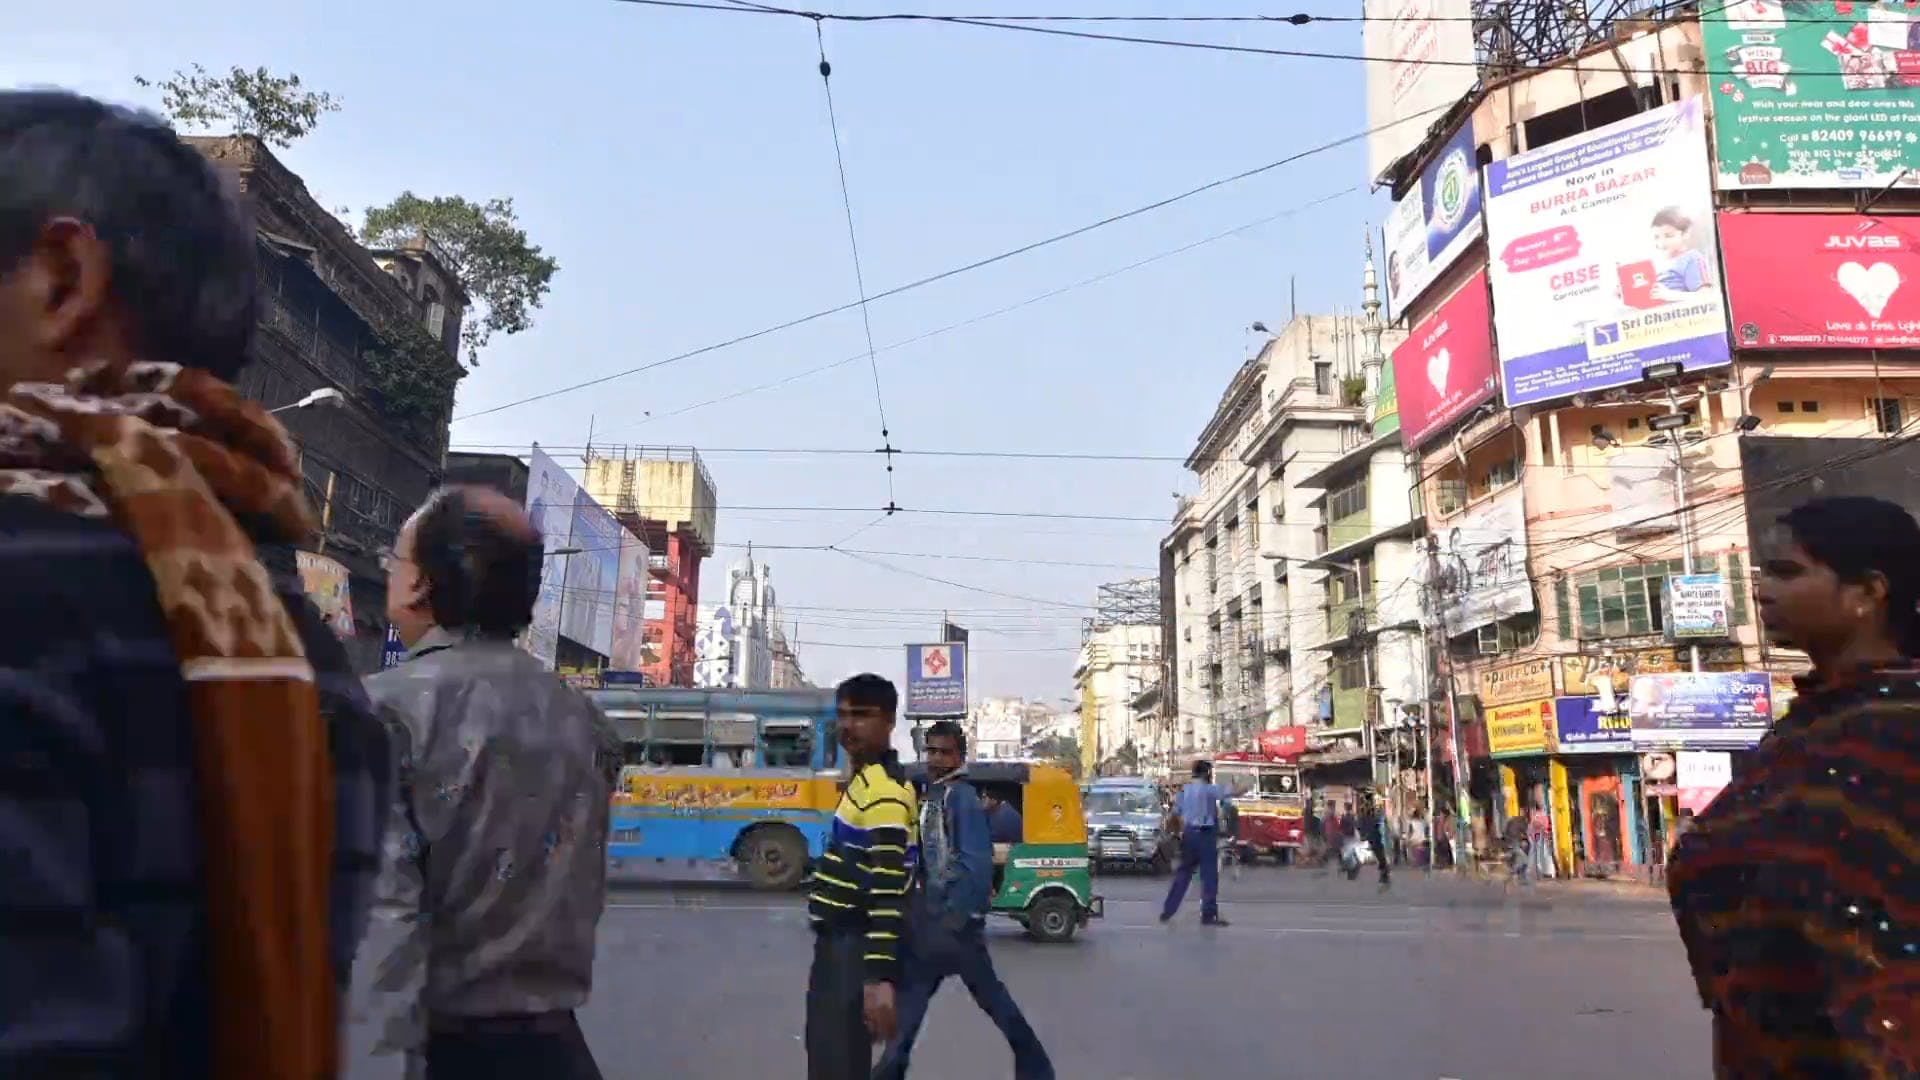 Time Lapse Of People And Traffic